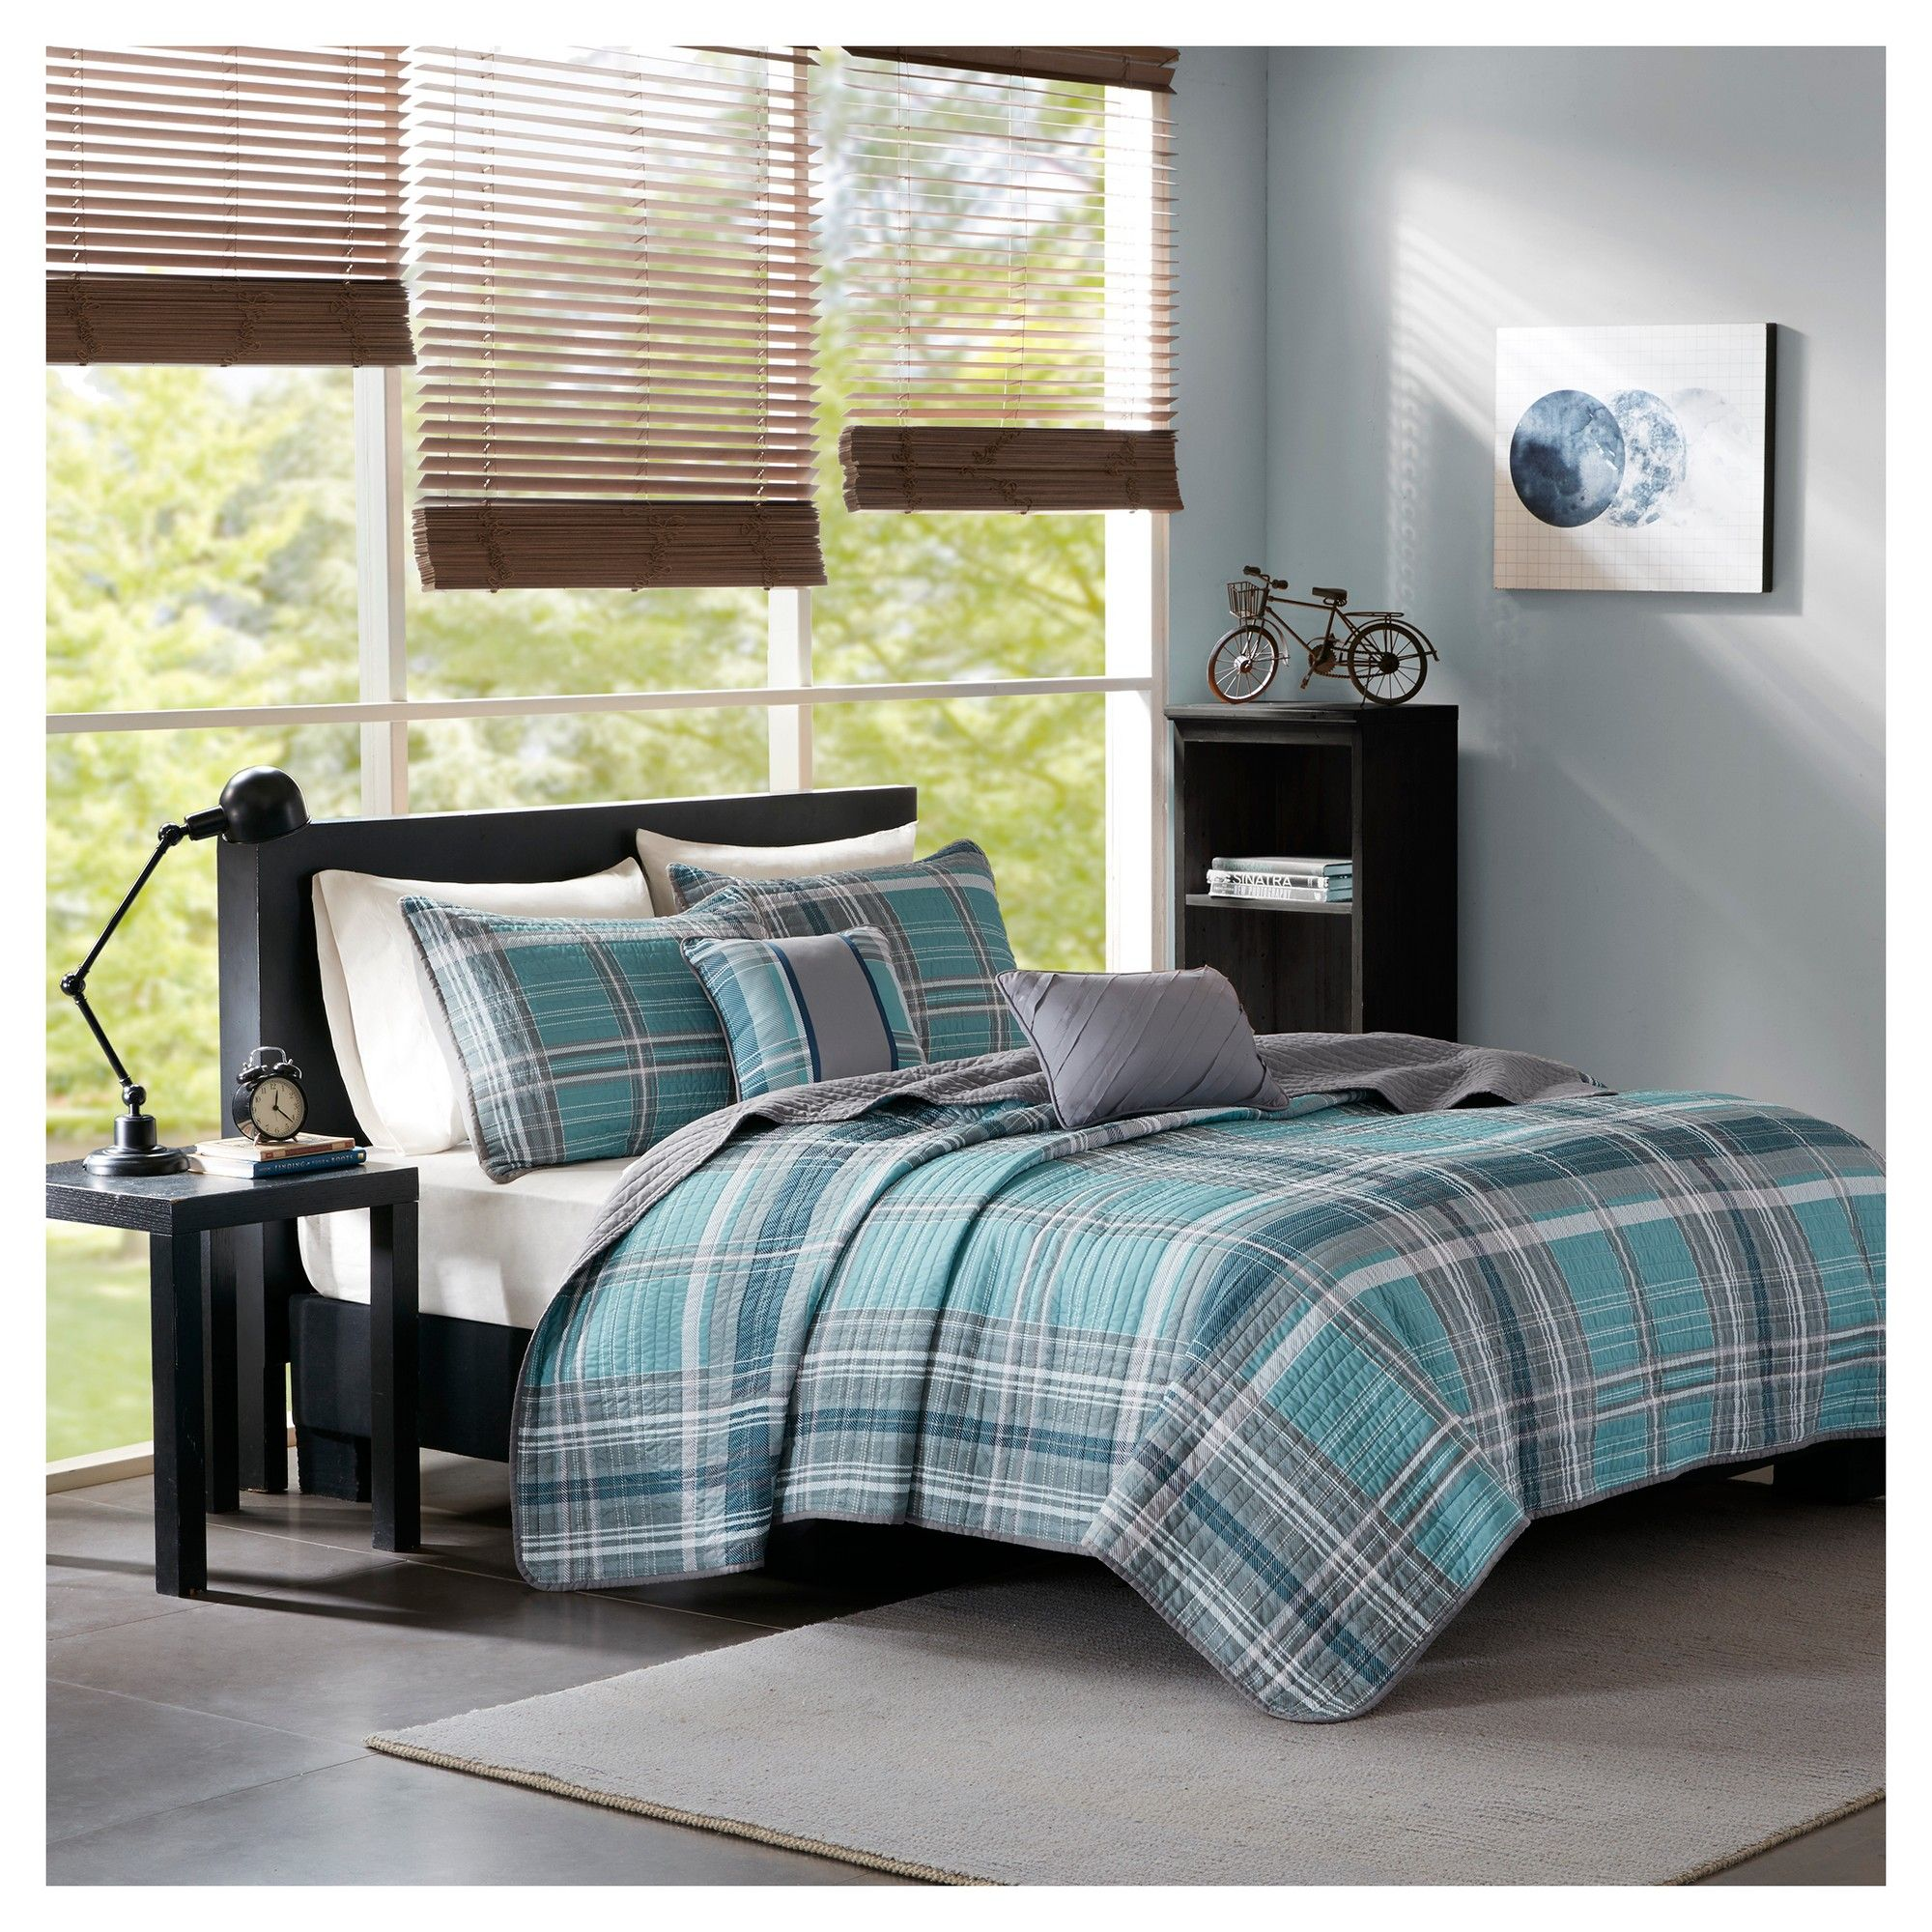 New Blue and Gray Twin Comforter